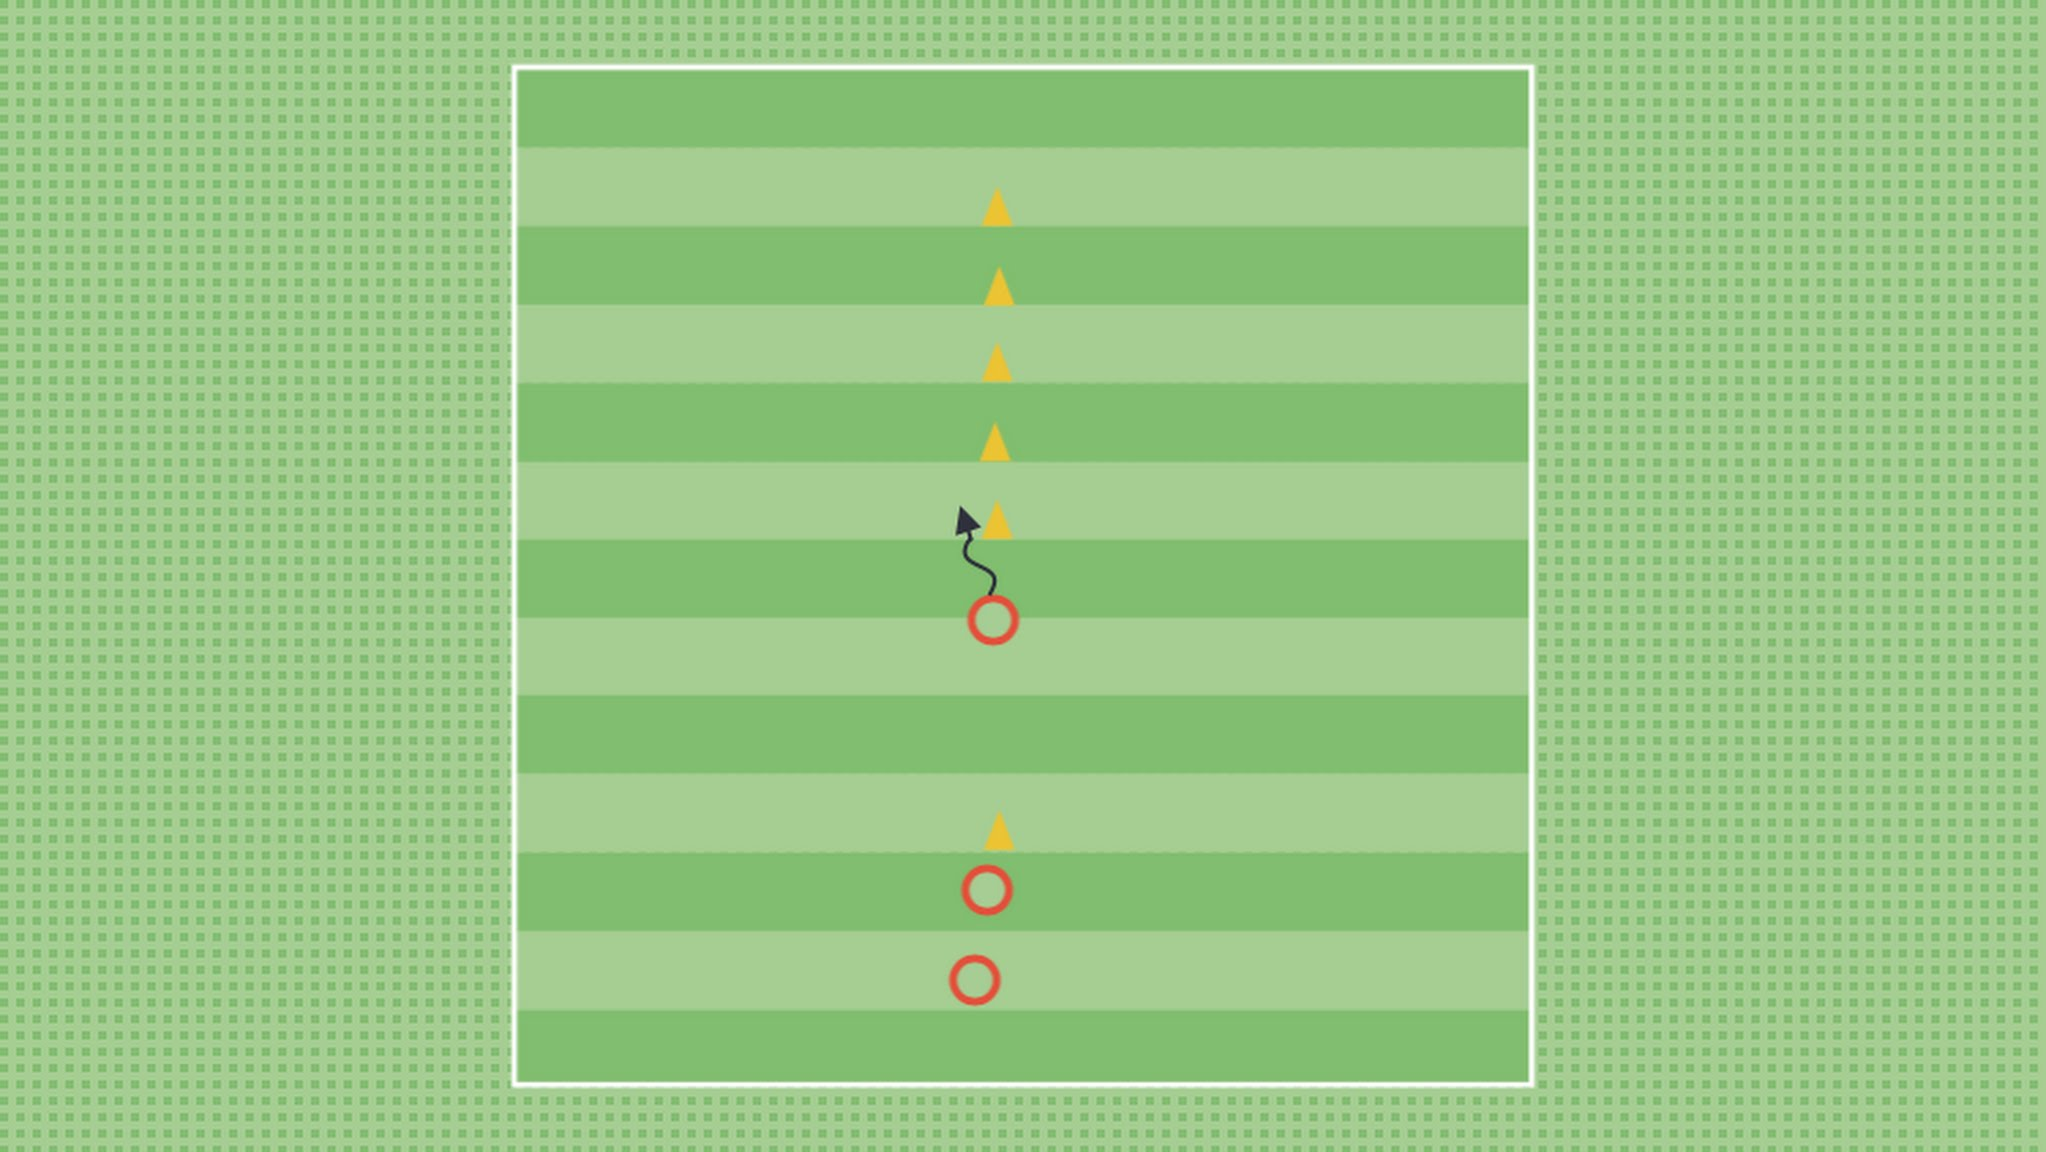 In the above example, player's get plenty of repetition. However, after a while, this may not be the most fun.